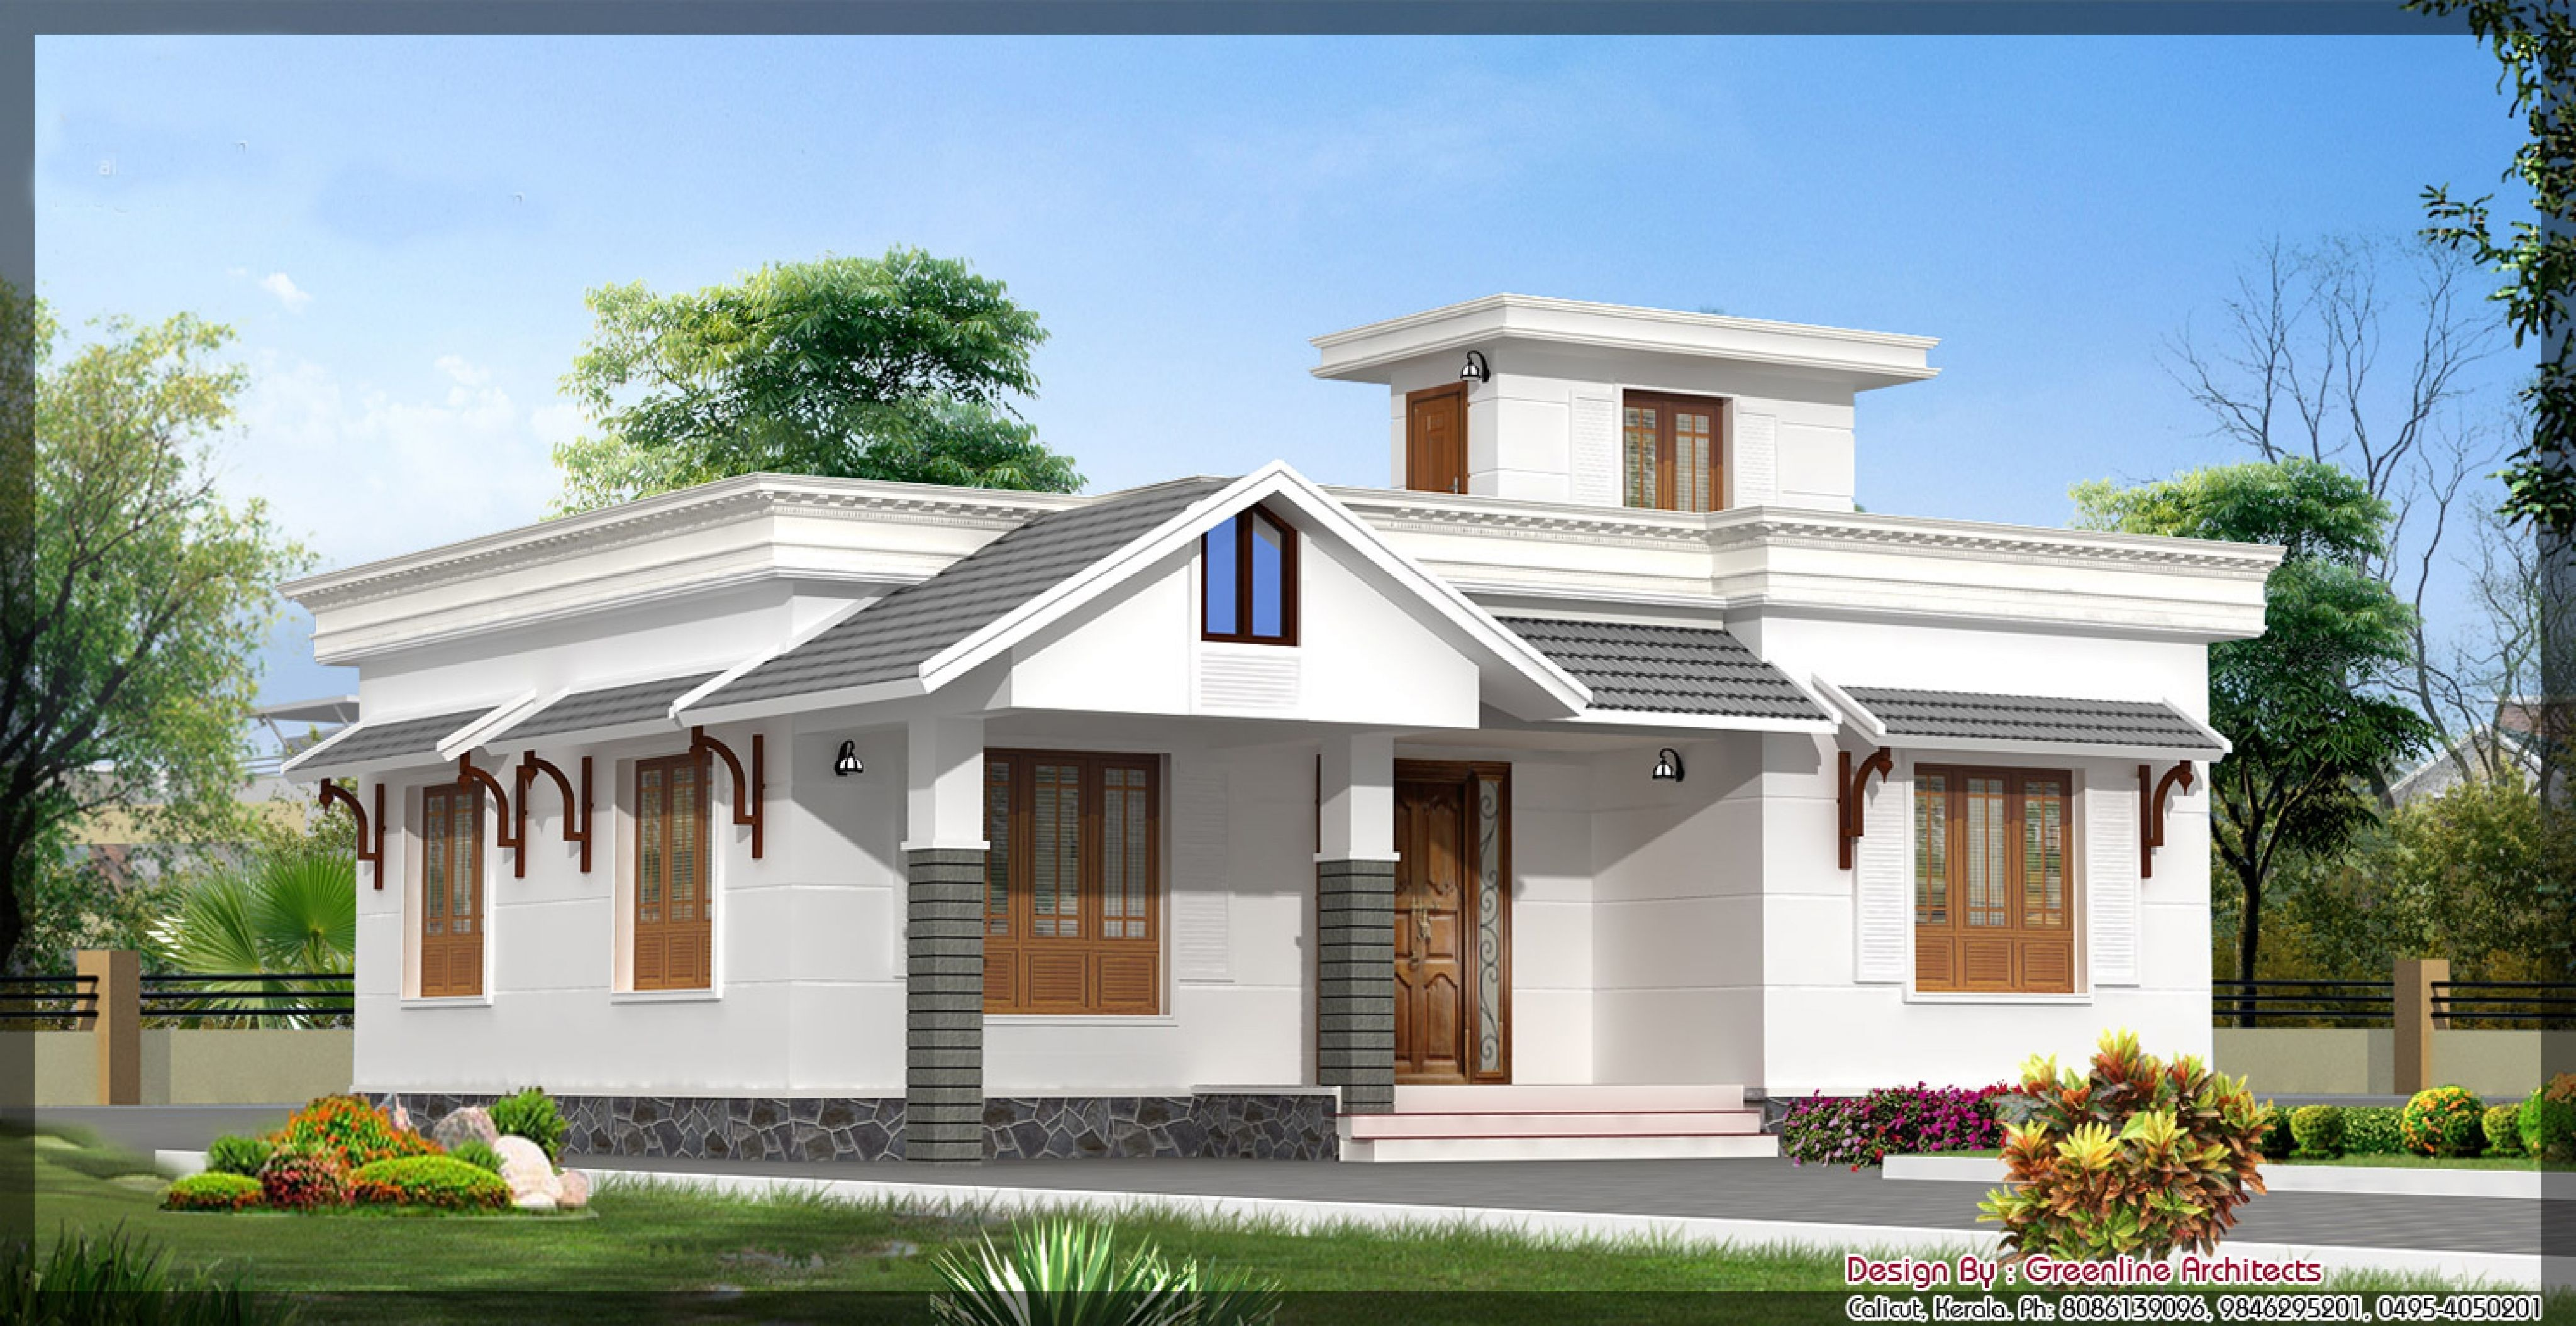 Simple And Beautiful Houses Design Lowes Paint Colors Interior House Design Pictures House Design Photos Modern Bungalow House